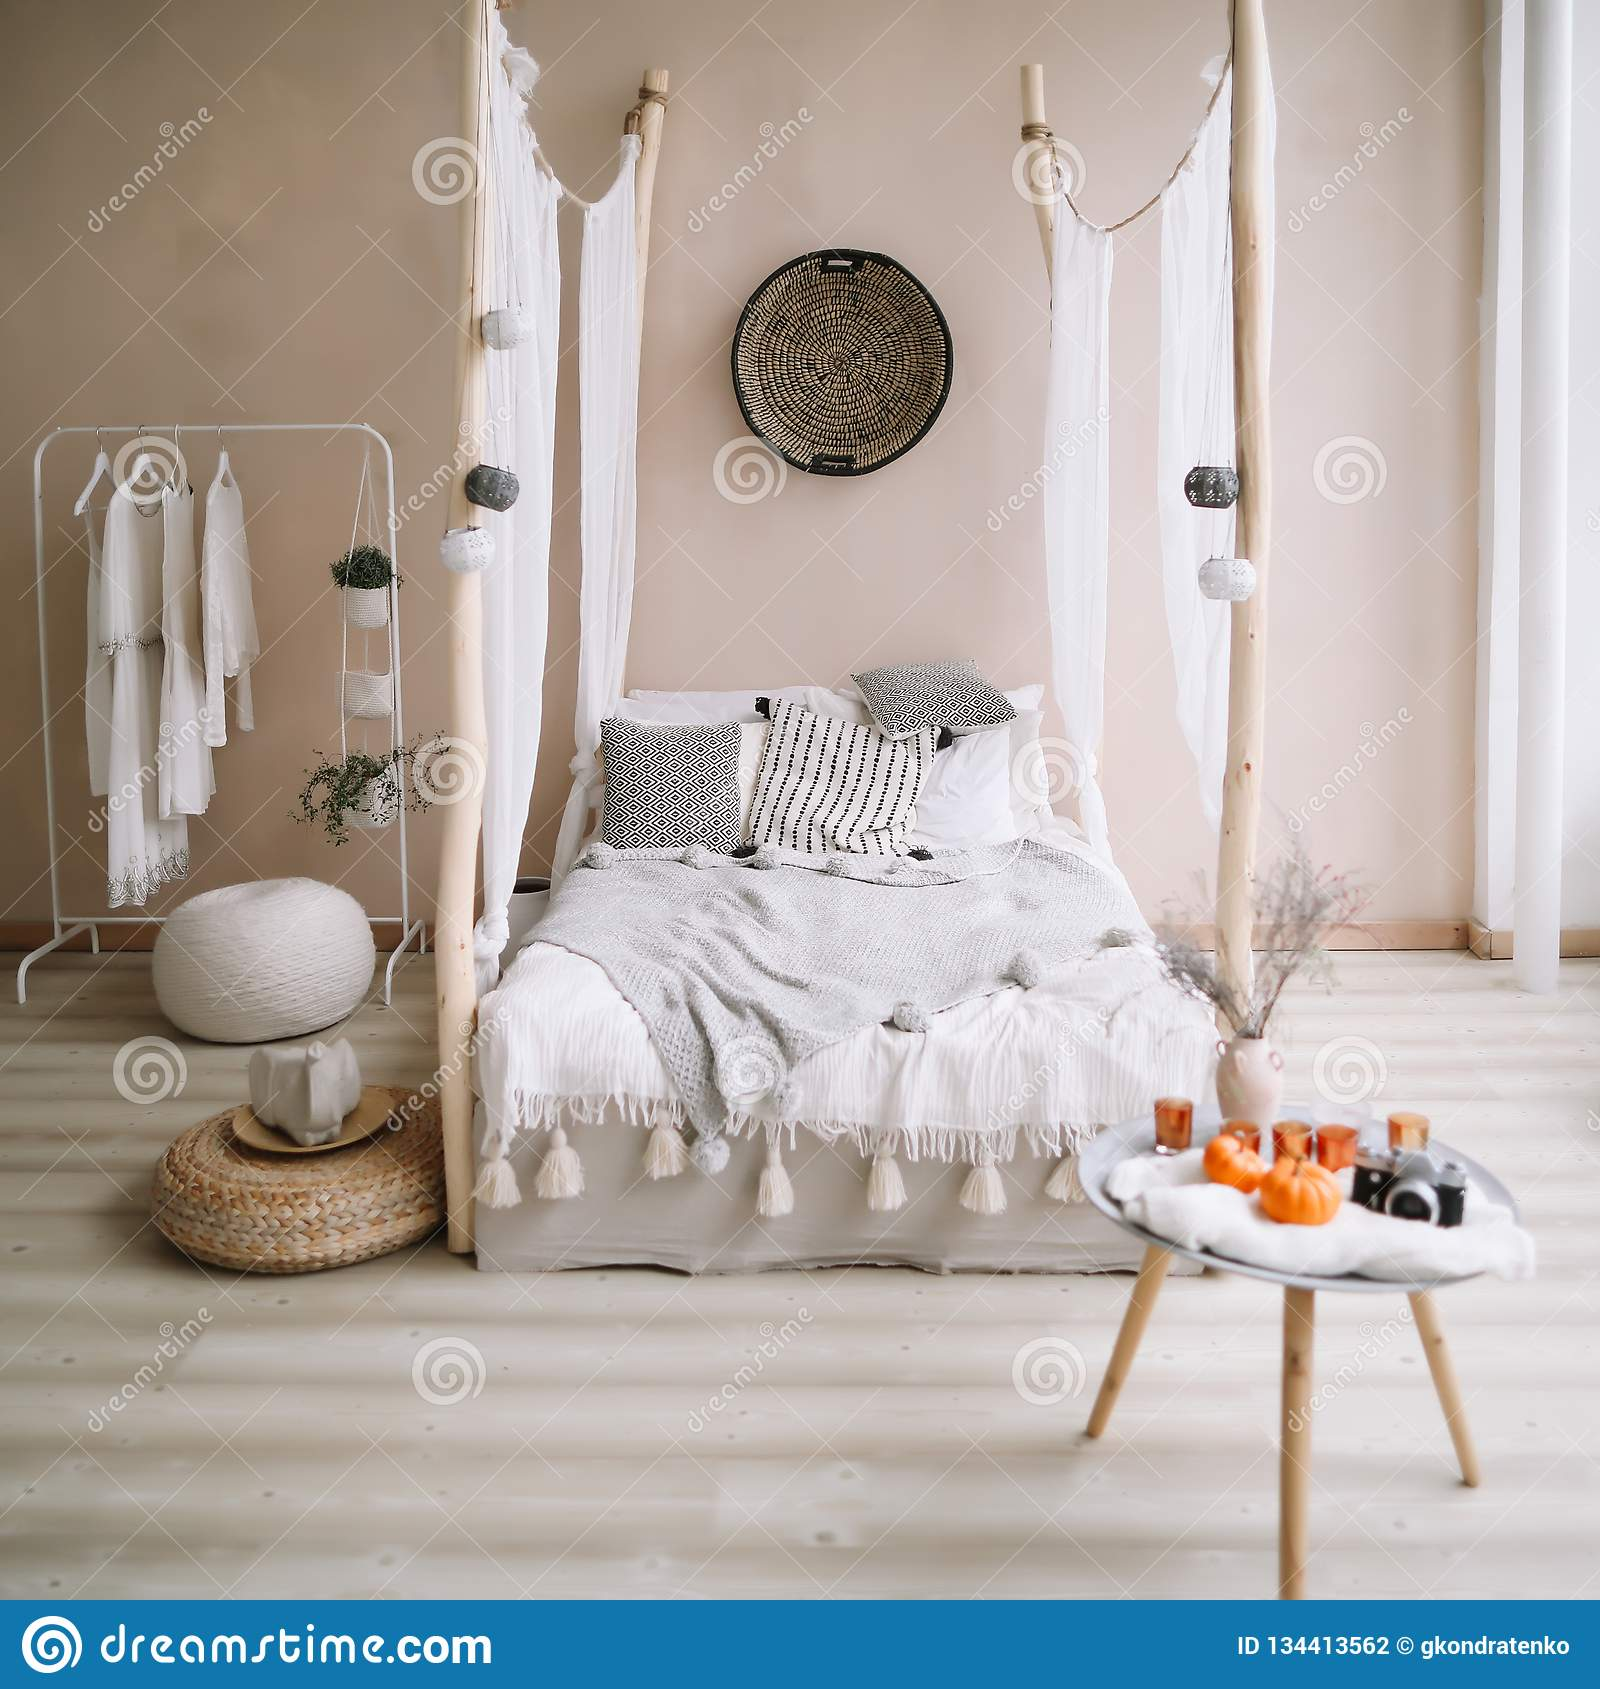 Modern Home Interior Design Exotic Bedroom Interior Scandinavian Style Stock Photo Image Of Boho Minimalism 134413562